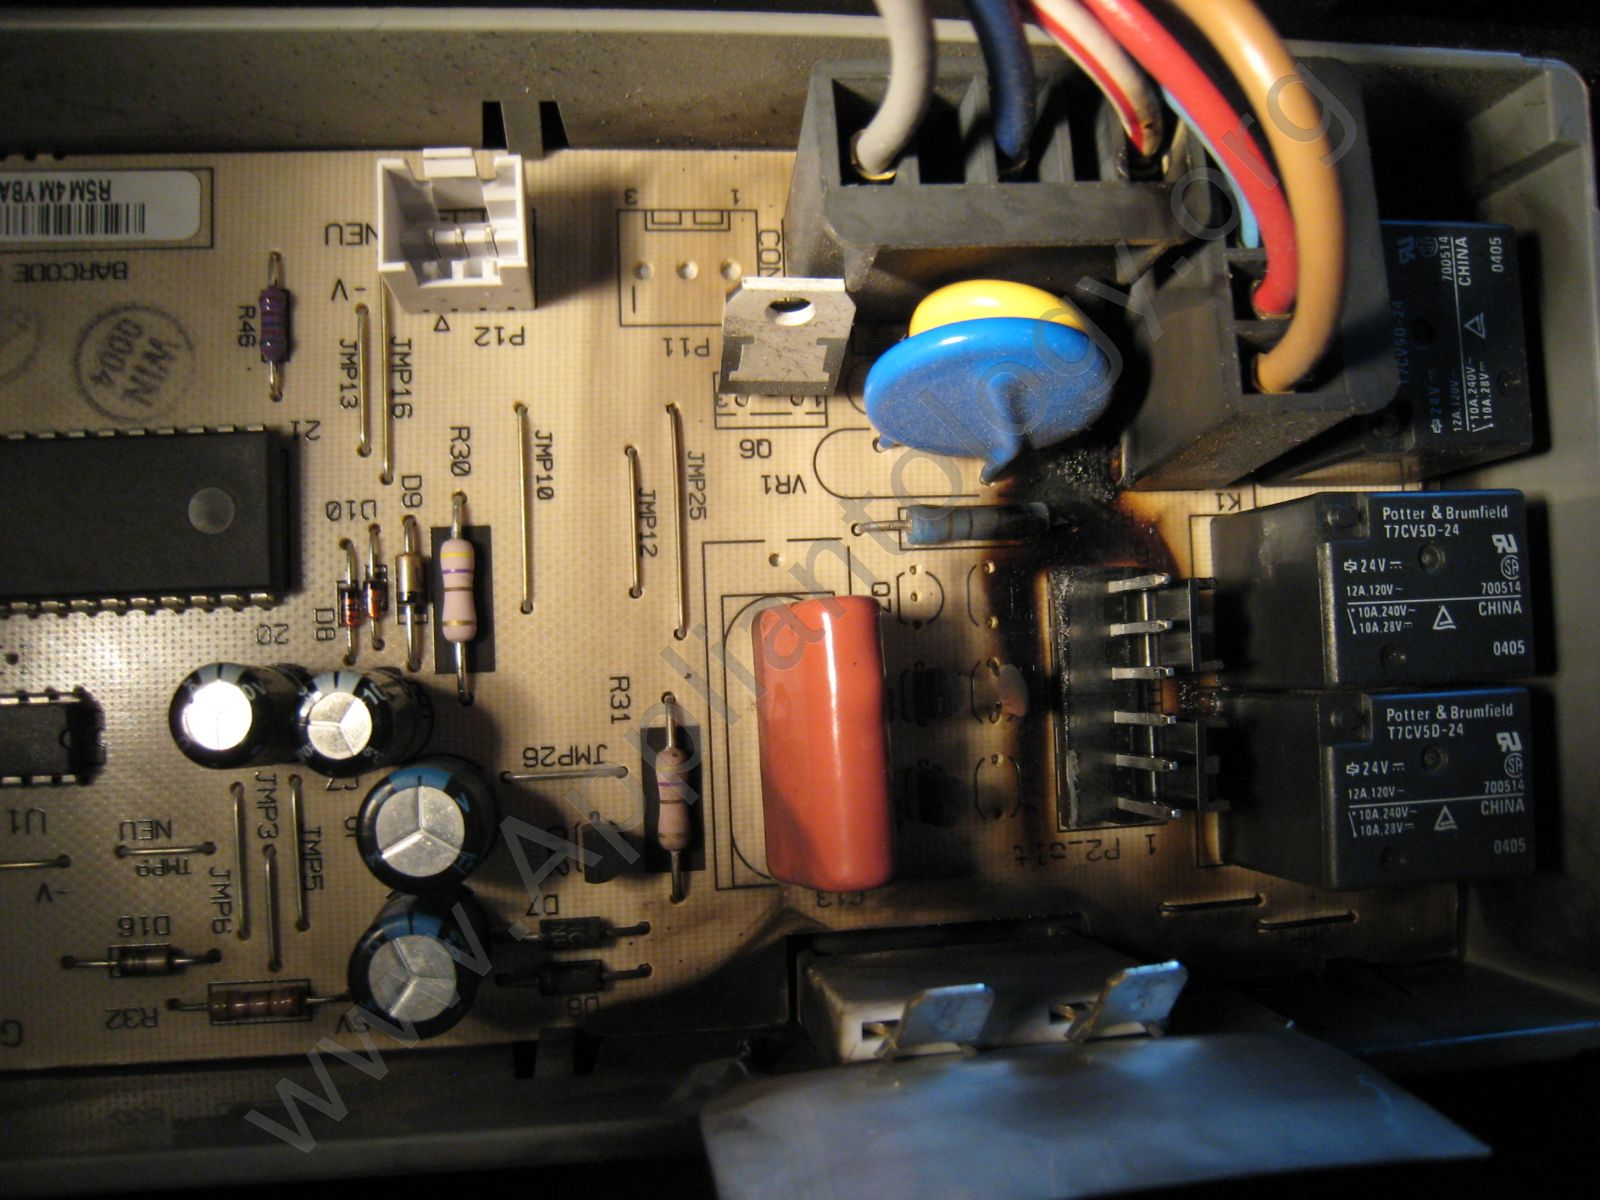 Another View of the Board where the Wire Harness Connector Attached - Kitchenaid Dishwasher Control Board